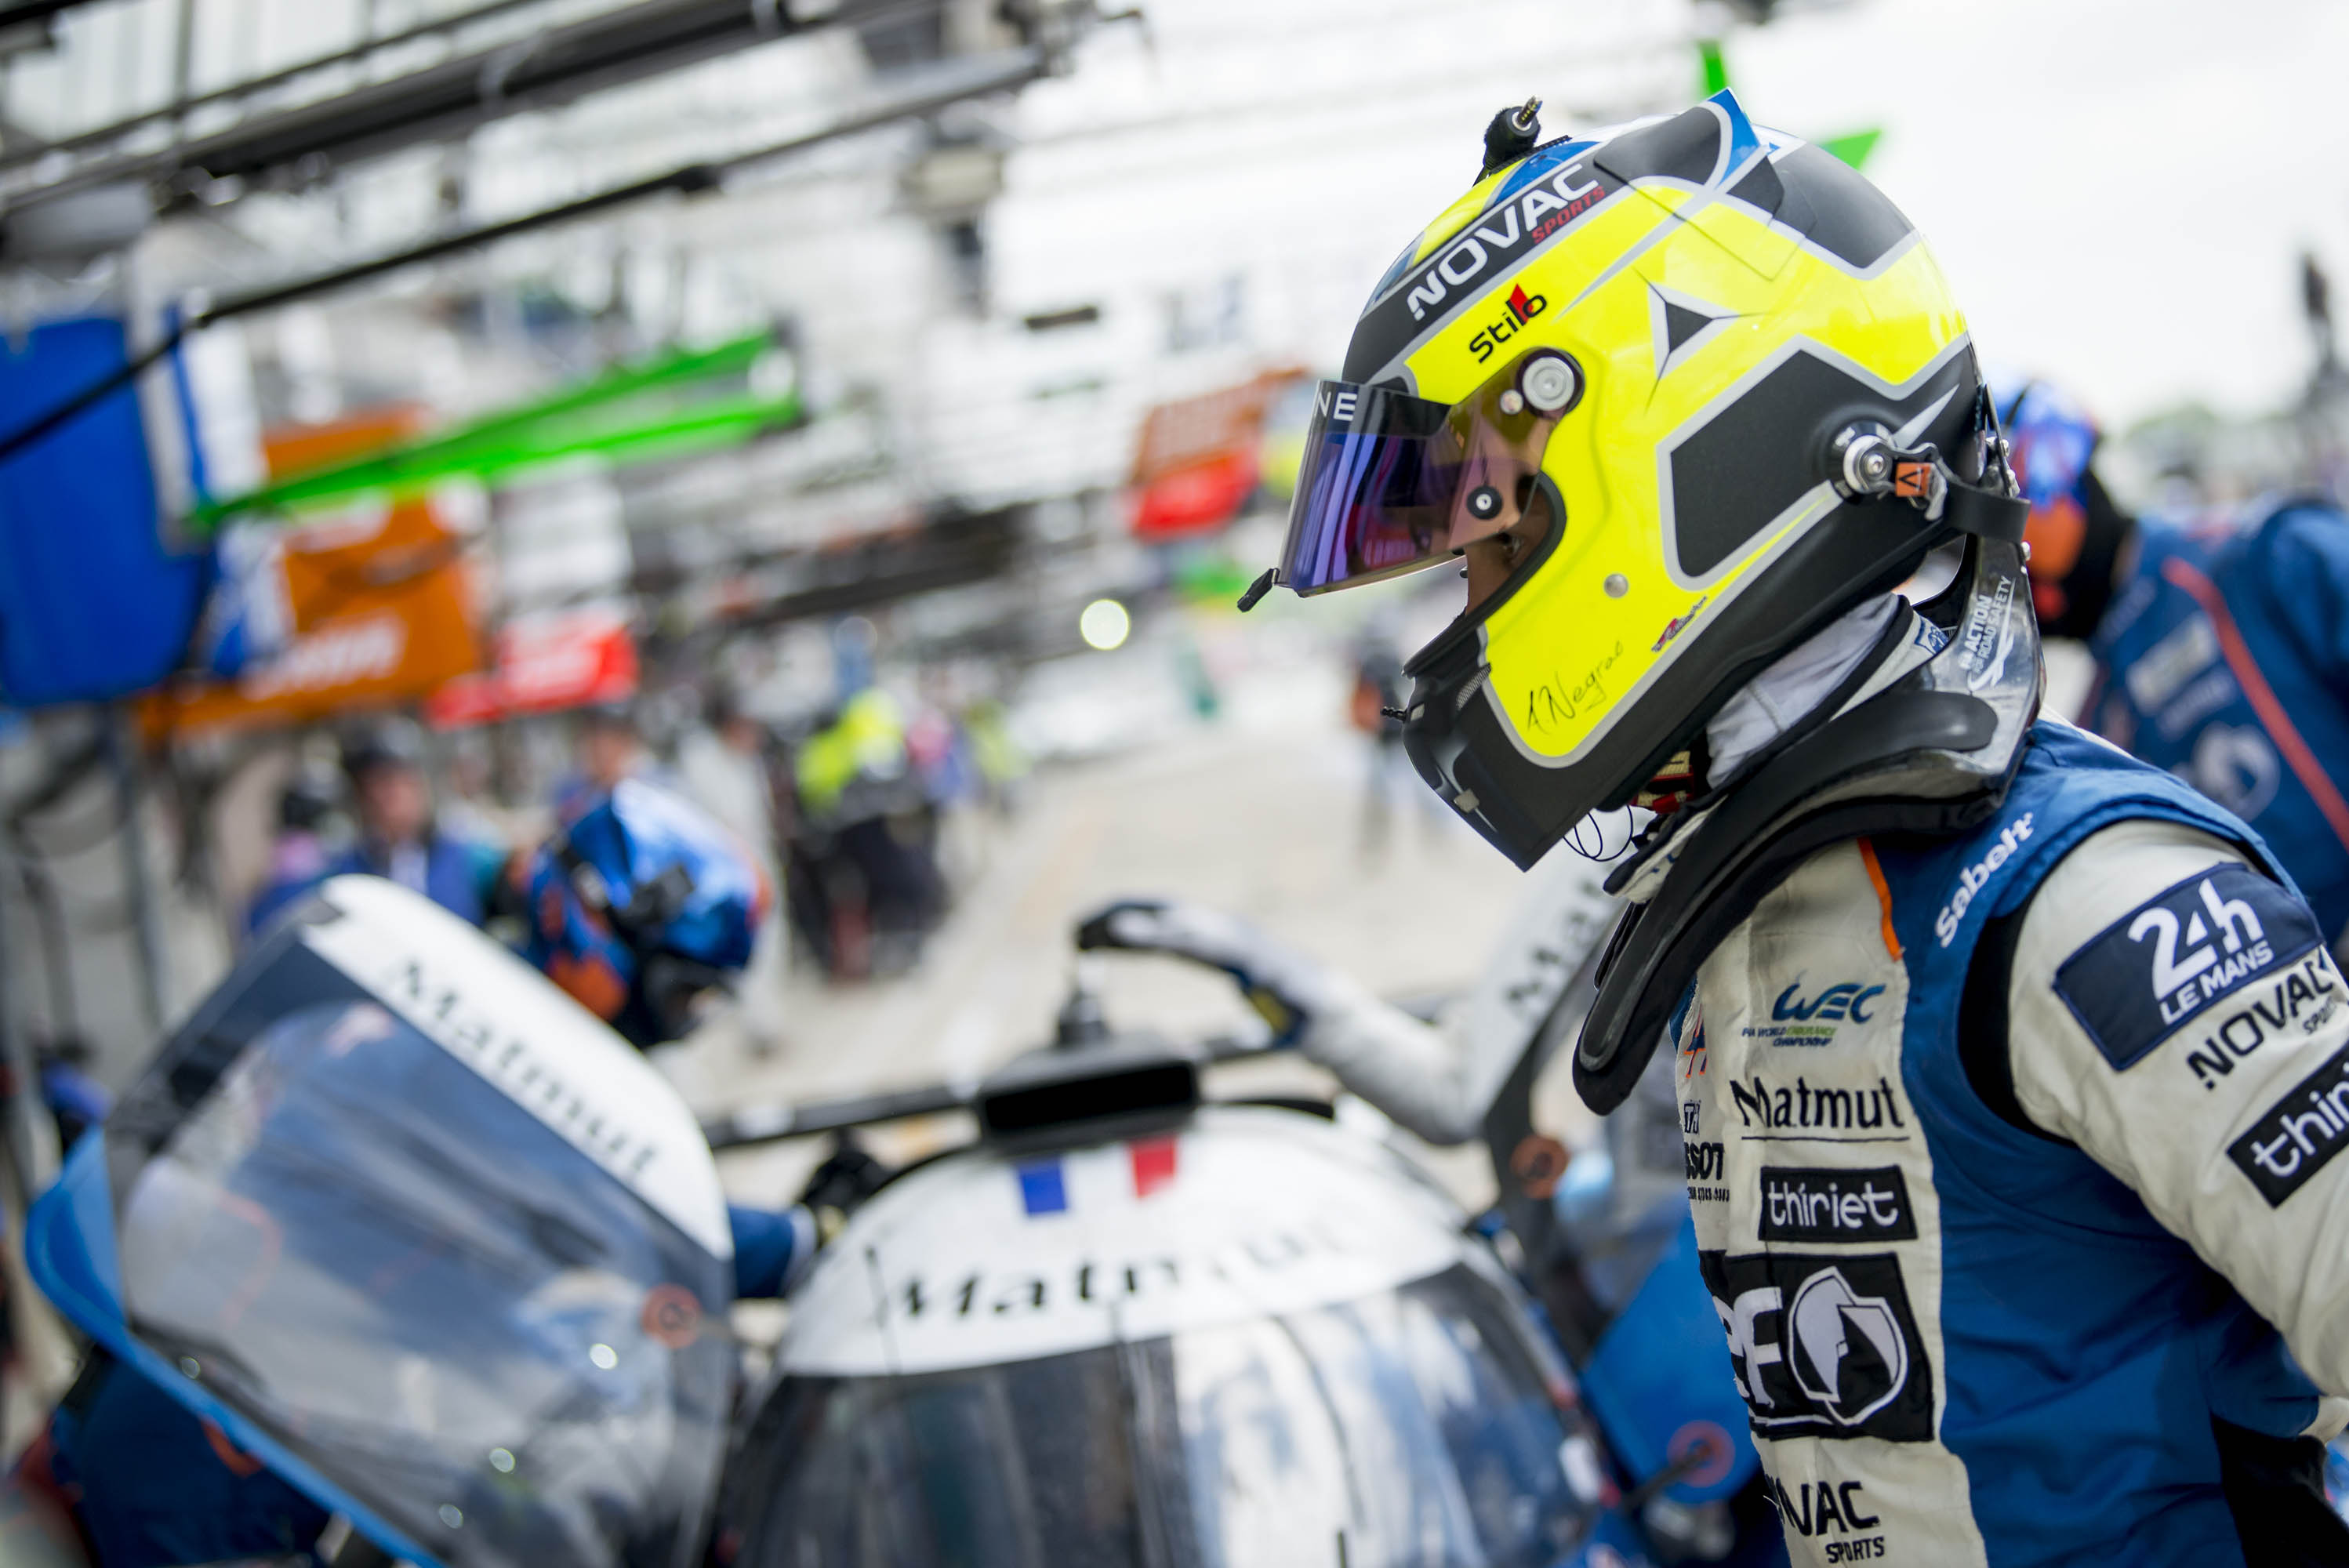 MRS_Alpine_LeMans2019_06012